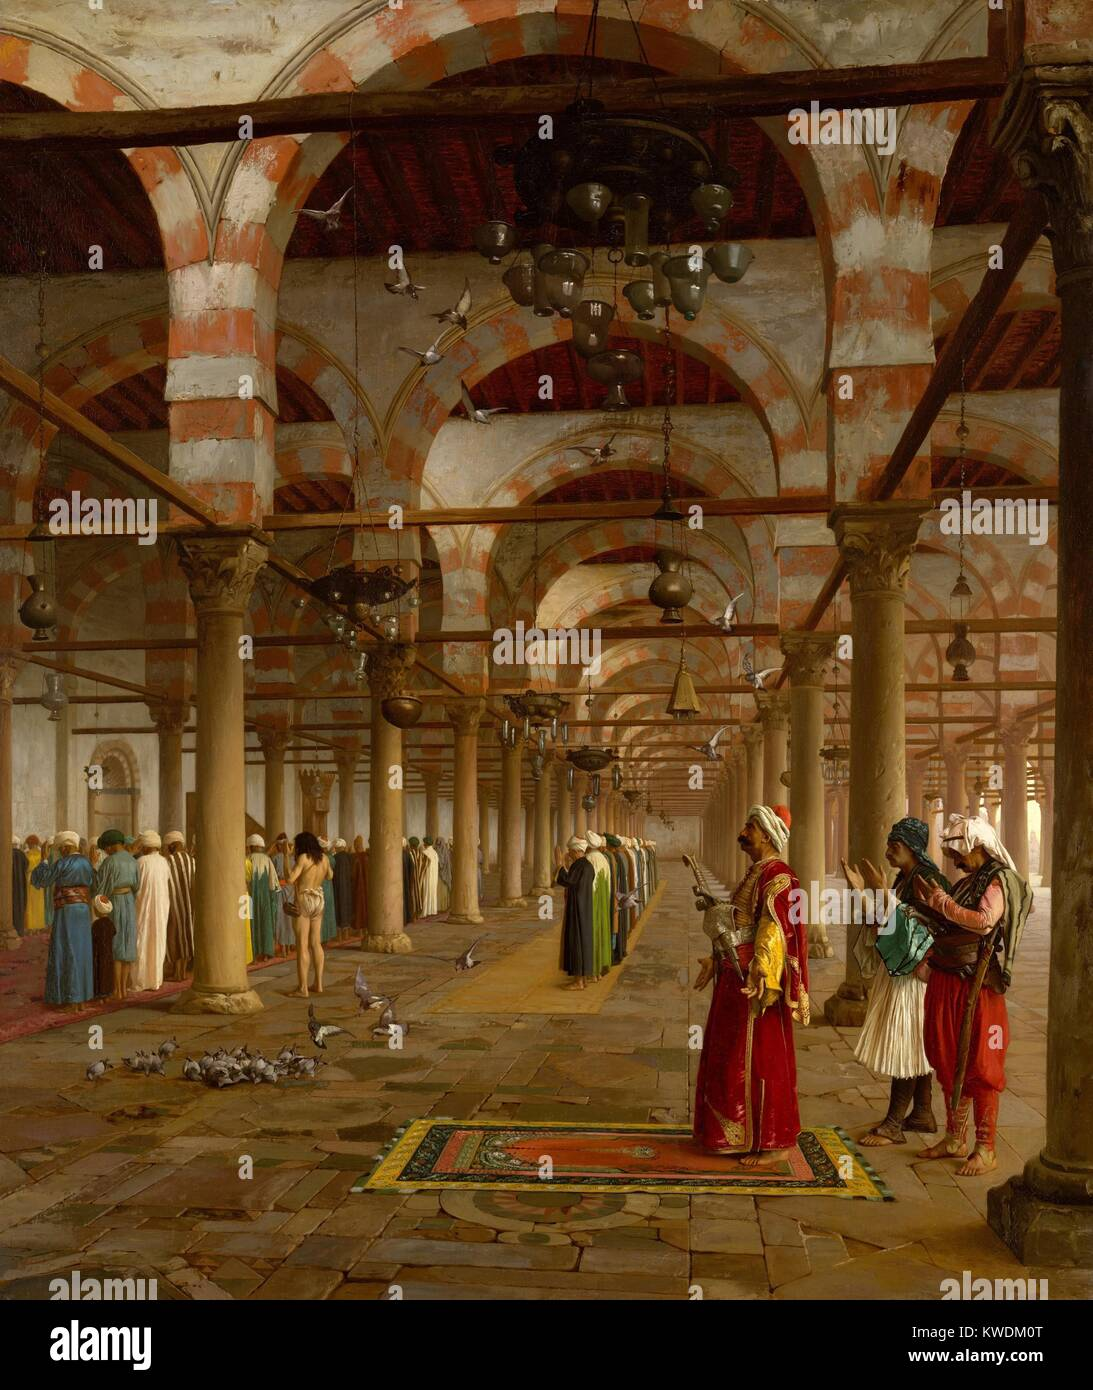 PRAYER IN THE MOSQUE, by Jean-Leon Gerome, 1871, French painting, oil on canvas. Islamic men praying in Mosque of Stock Photo